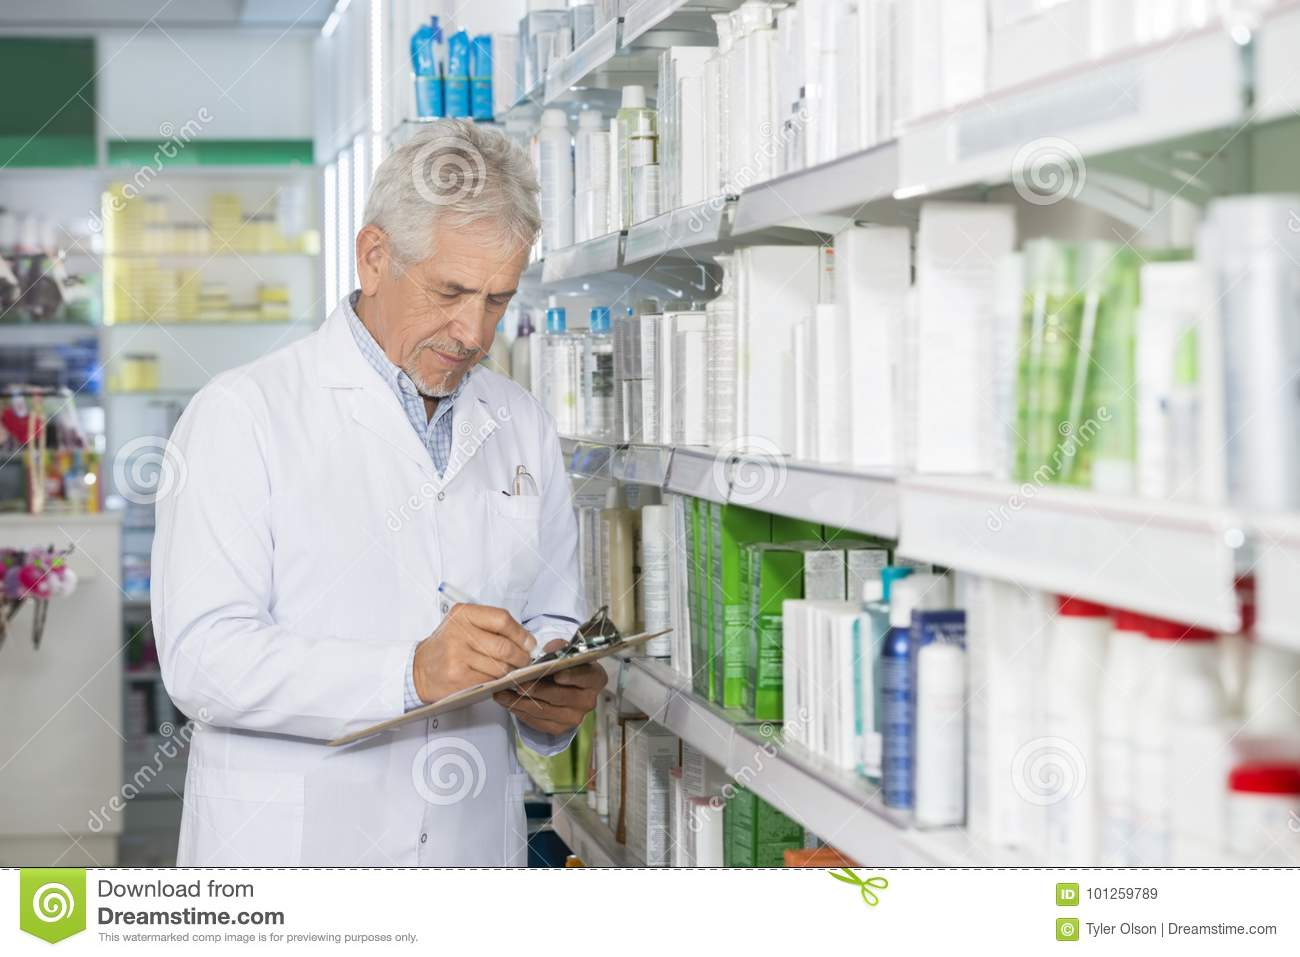 Chemist Writing On Clipboard While Standing By Shelves Stock Image